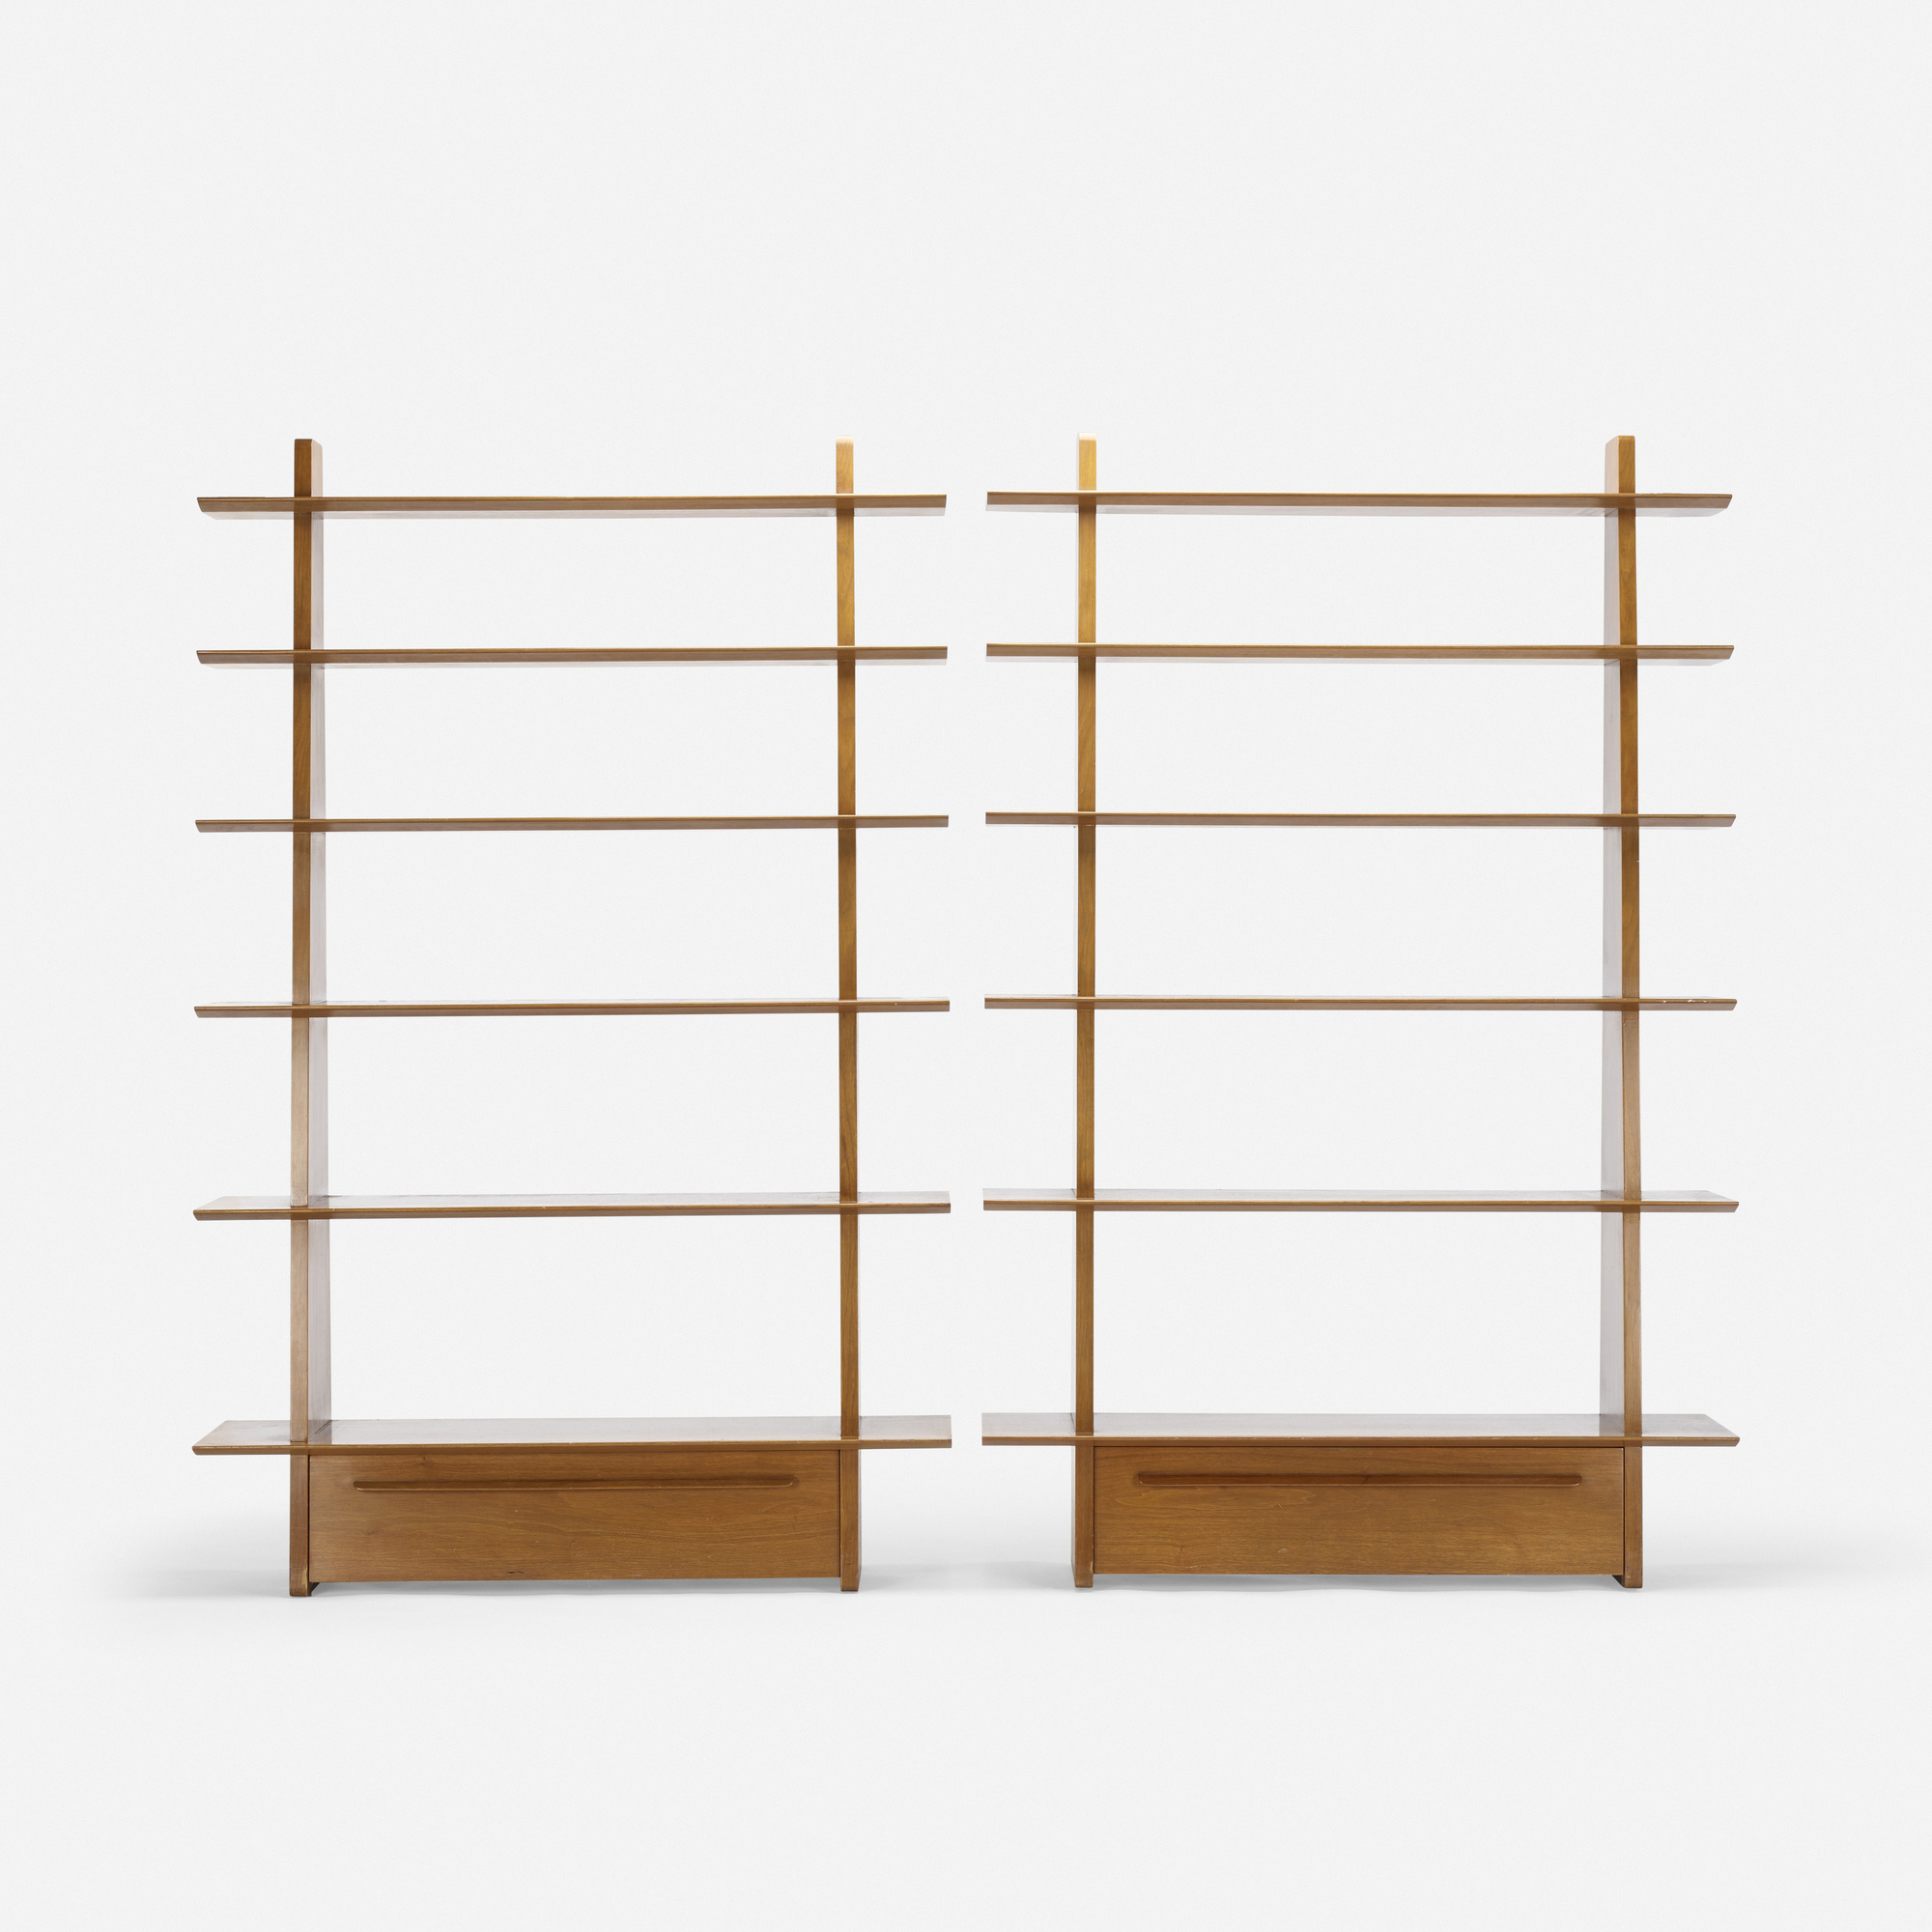 359: Edward Wormley / bookcases model 5264, pair (2 of 3)